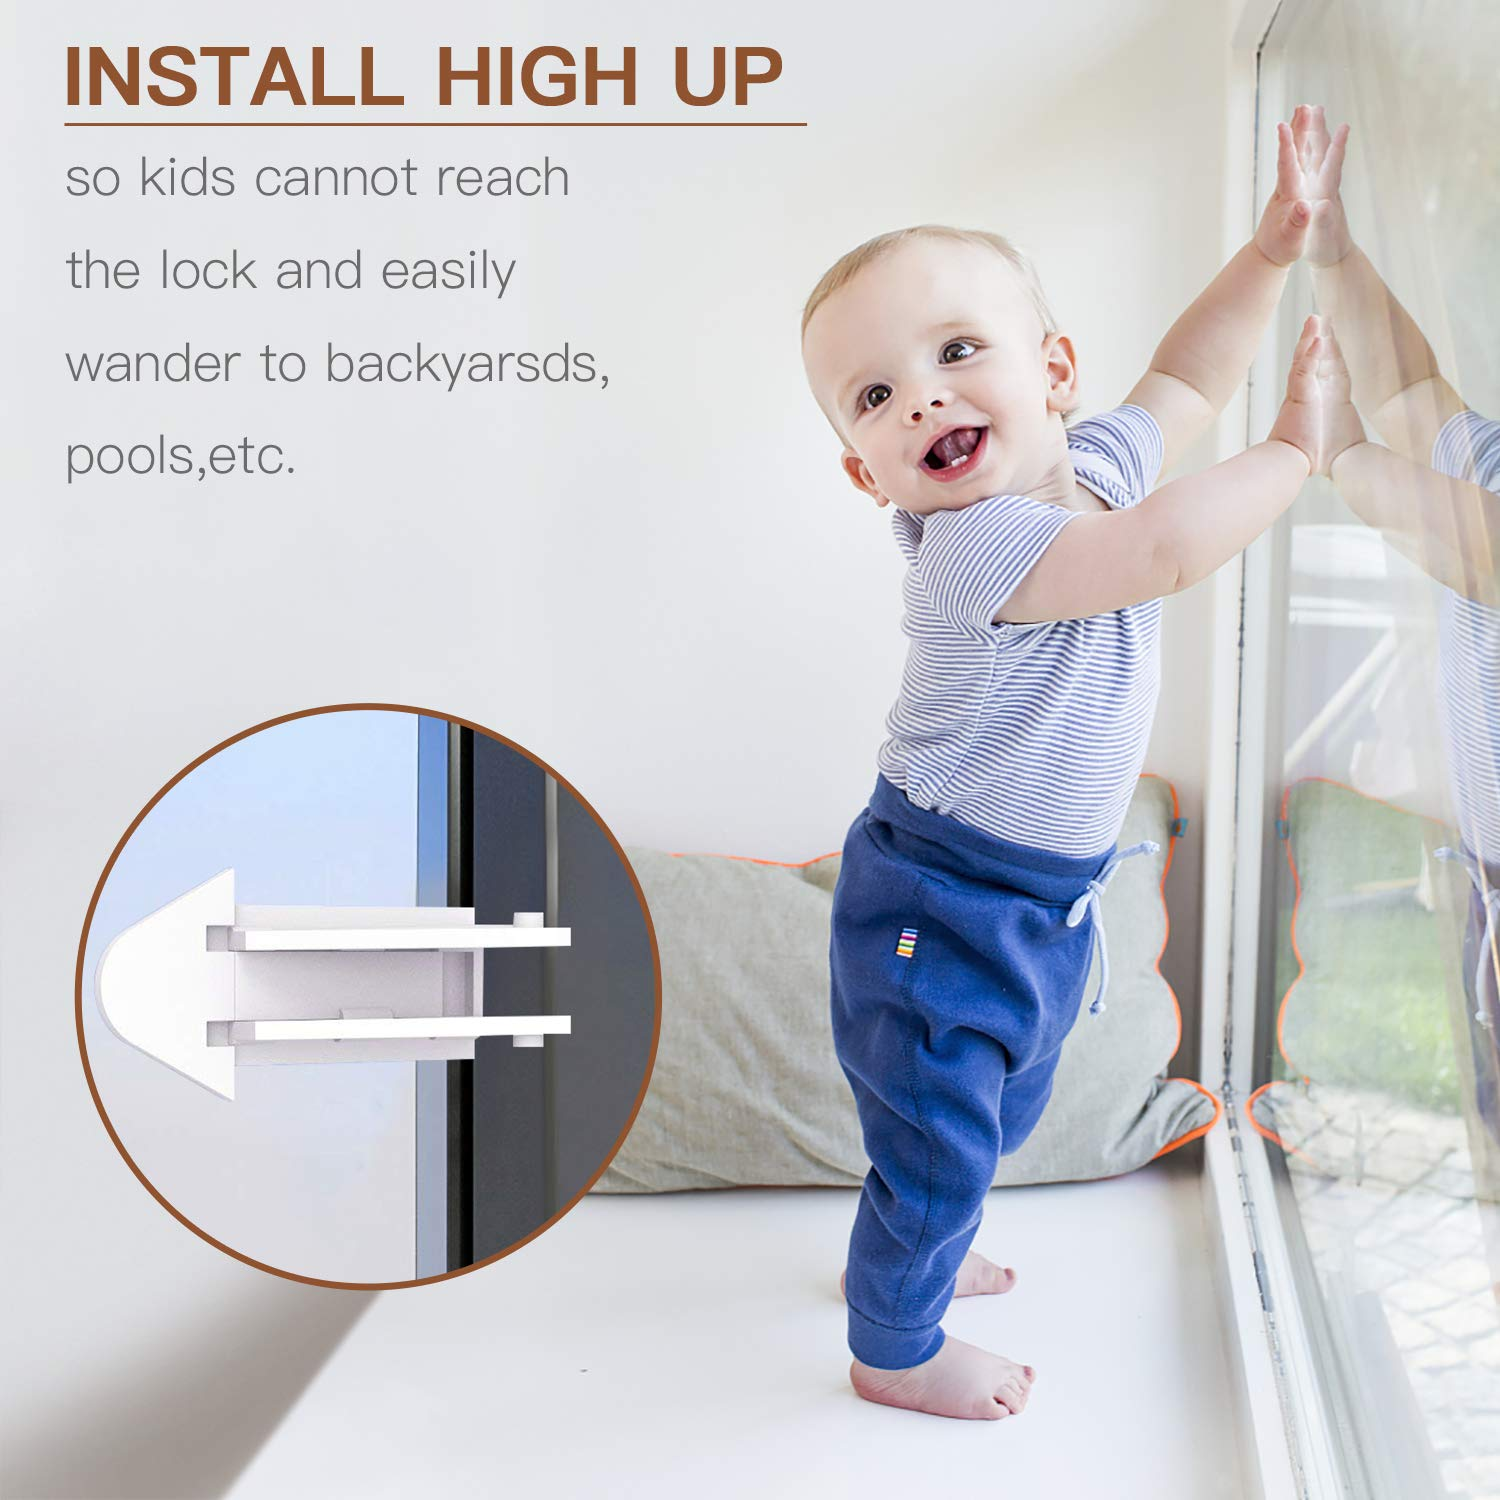 Closets 4 Pack, White Windows Baby Proof Latch Doors Childproof Your Home with No Screws or Drills NANAPLUMS Sliding Door Lock for Child Safety Patio